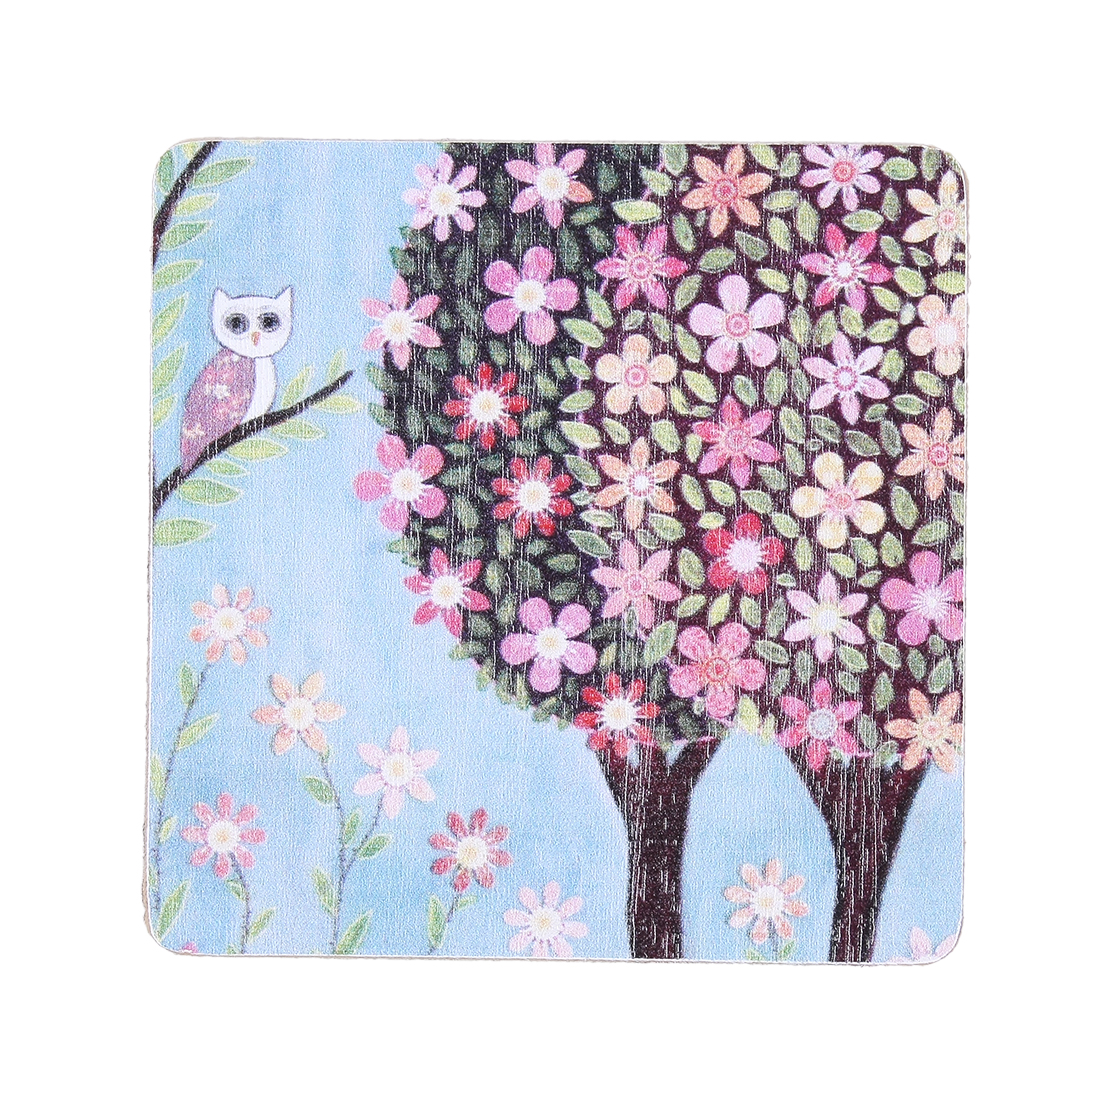 Tree Flower Owl Print Wooden Coaster Square Mat Table Bar Drinks Holder 9 x 9cm